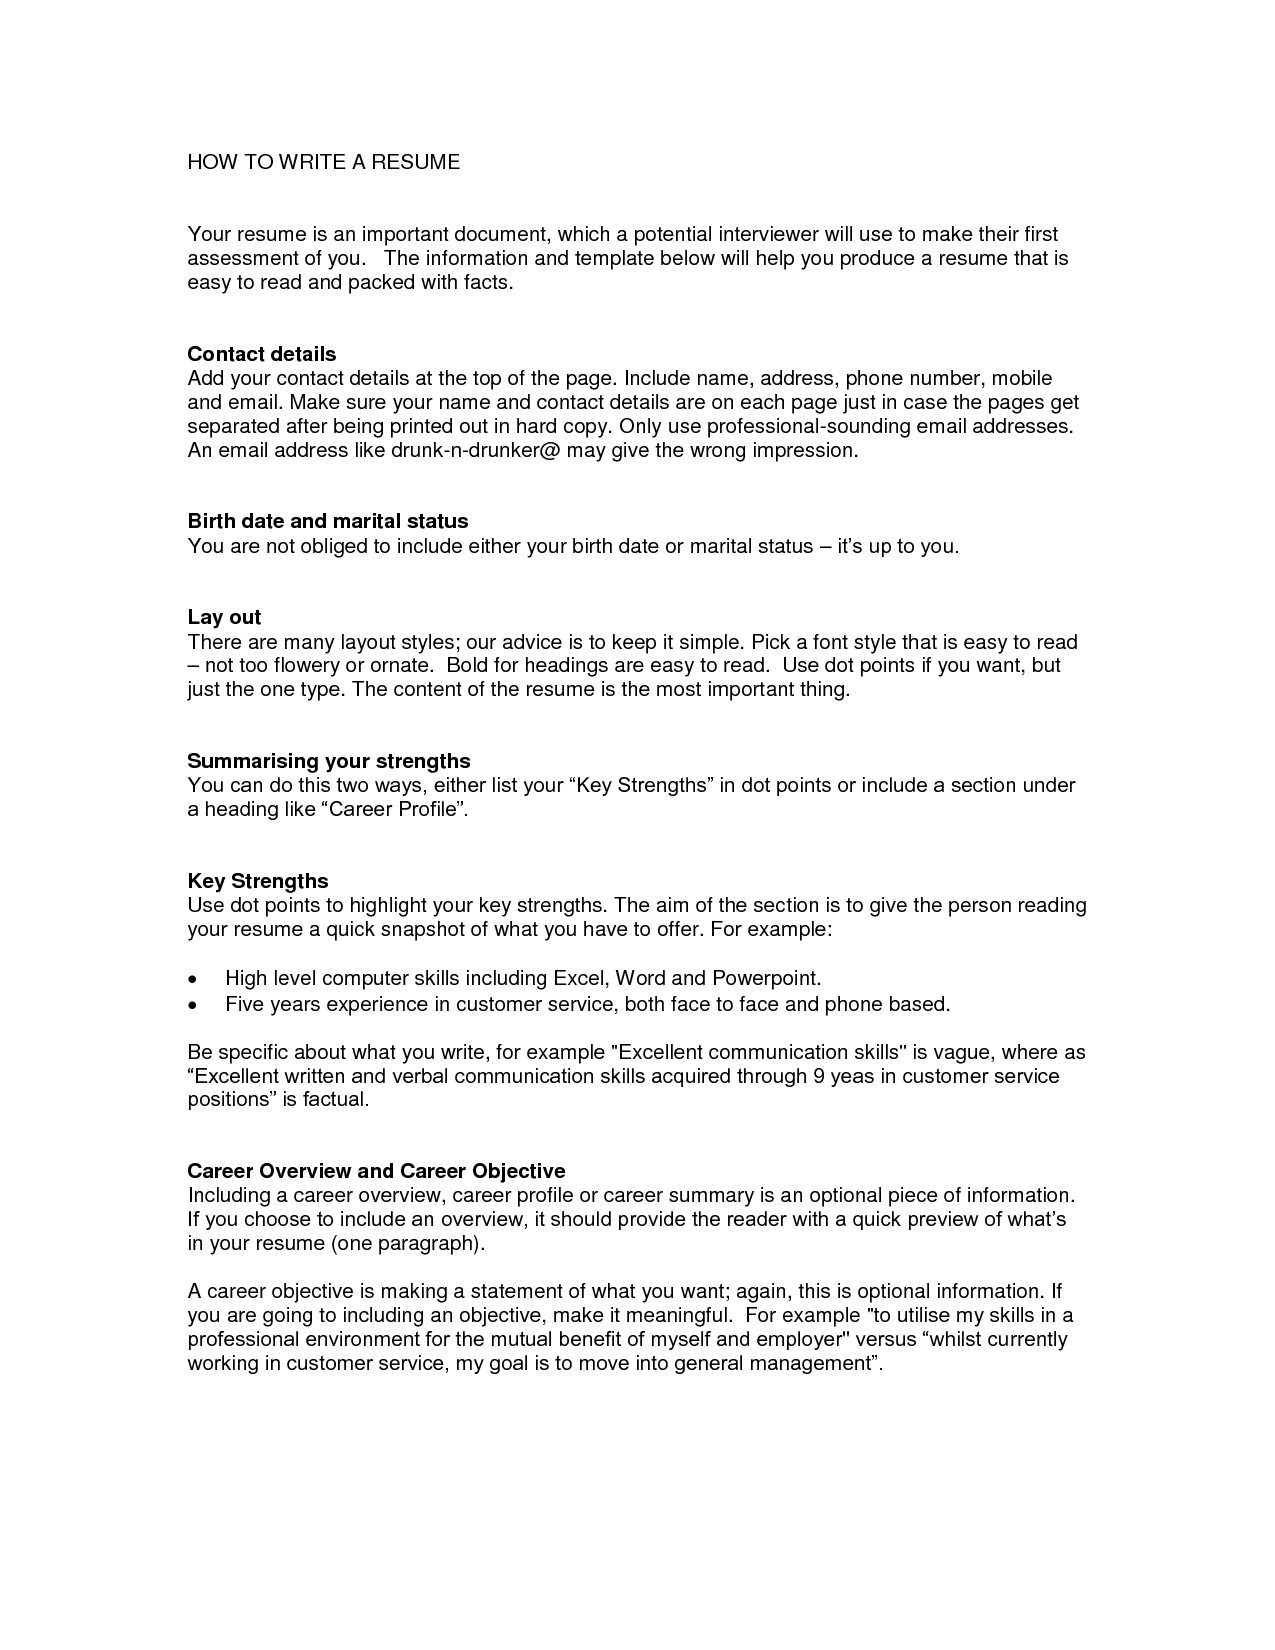 How To Write A Resume Examples And Samples How To Write A Resume Net The Easiest Online Resume